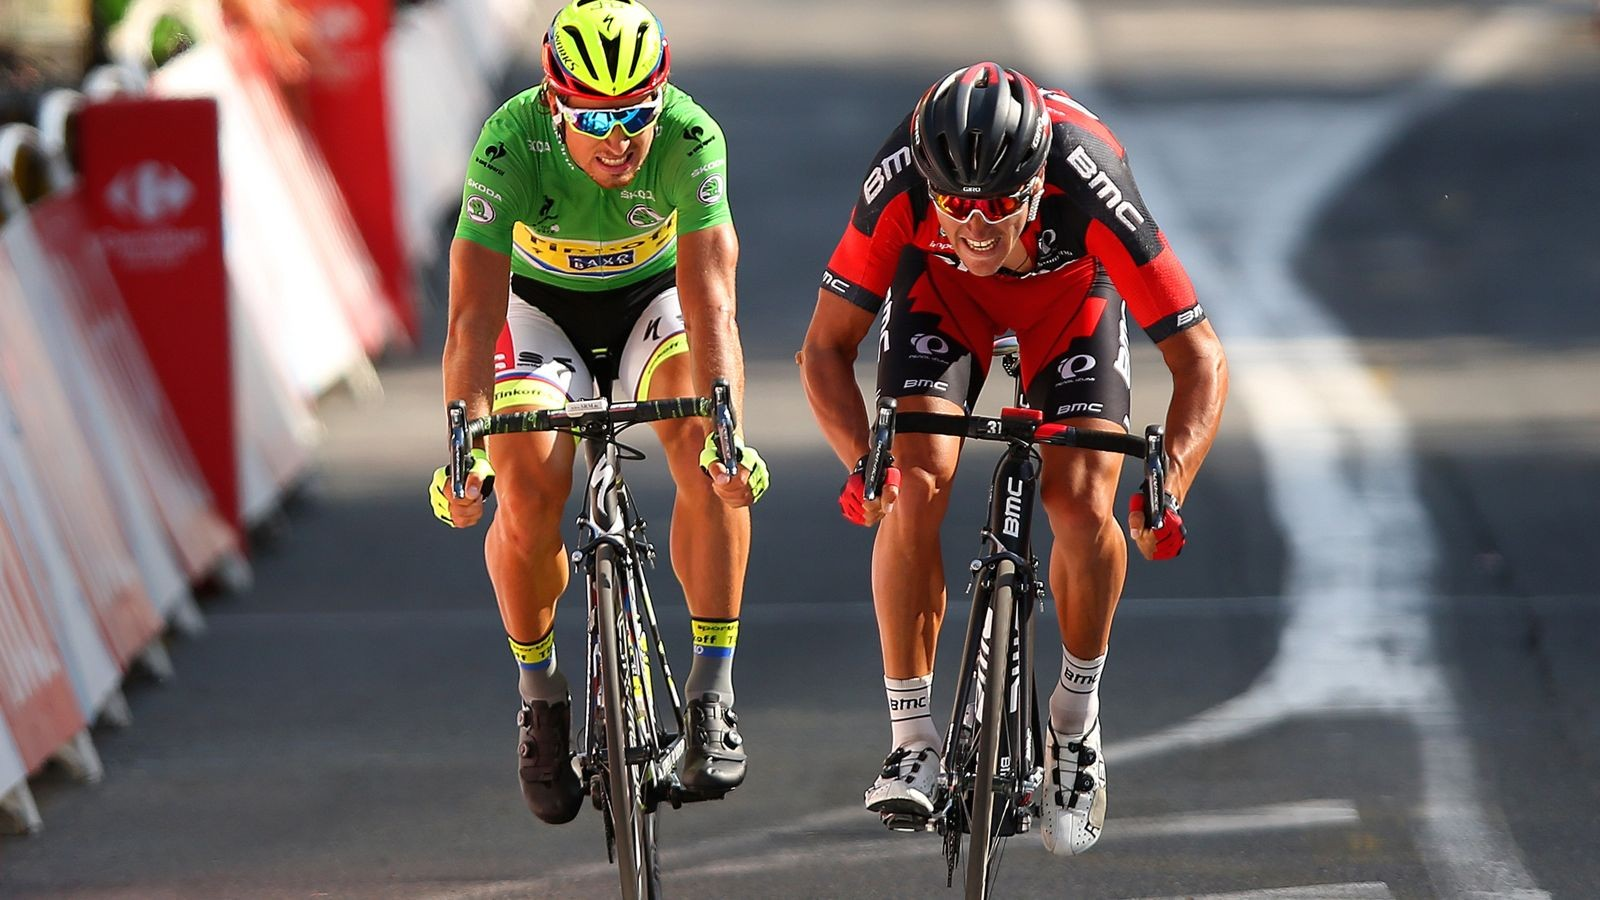 Greg Van Avermaet wins stage 13 of the 2015 Tour de France ahead of Peter Sagan